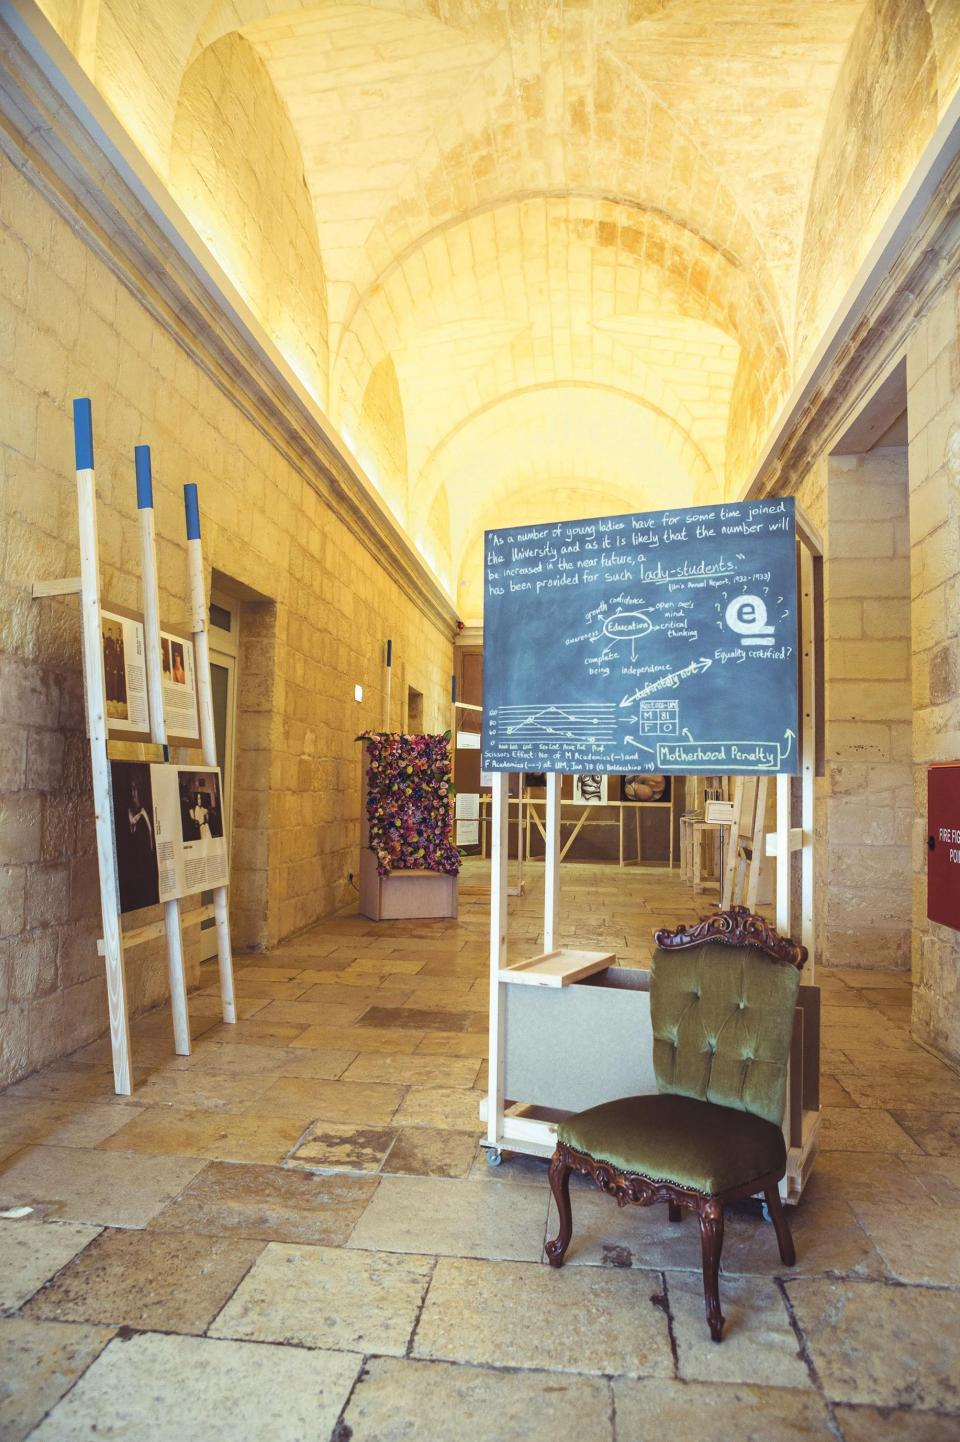 The Lady's Chair by Kristina Borg (right) and information relating to some of the first women who attended the University of Malta (left).